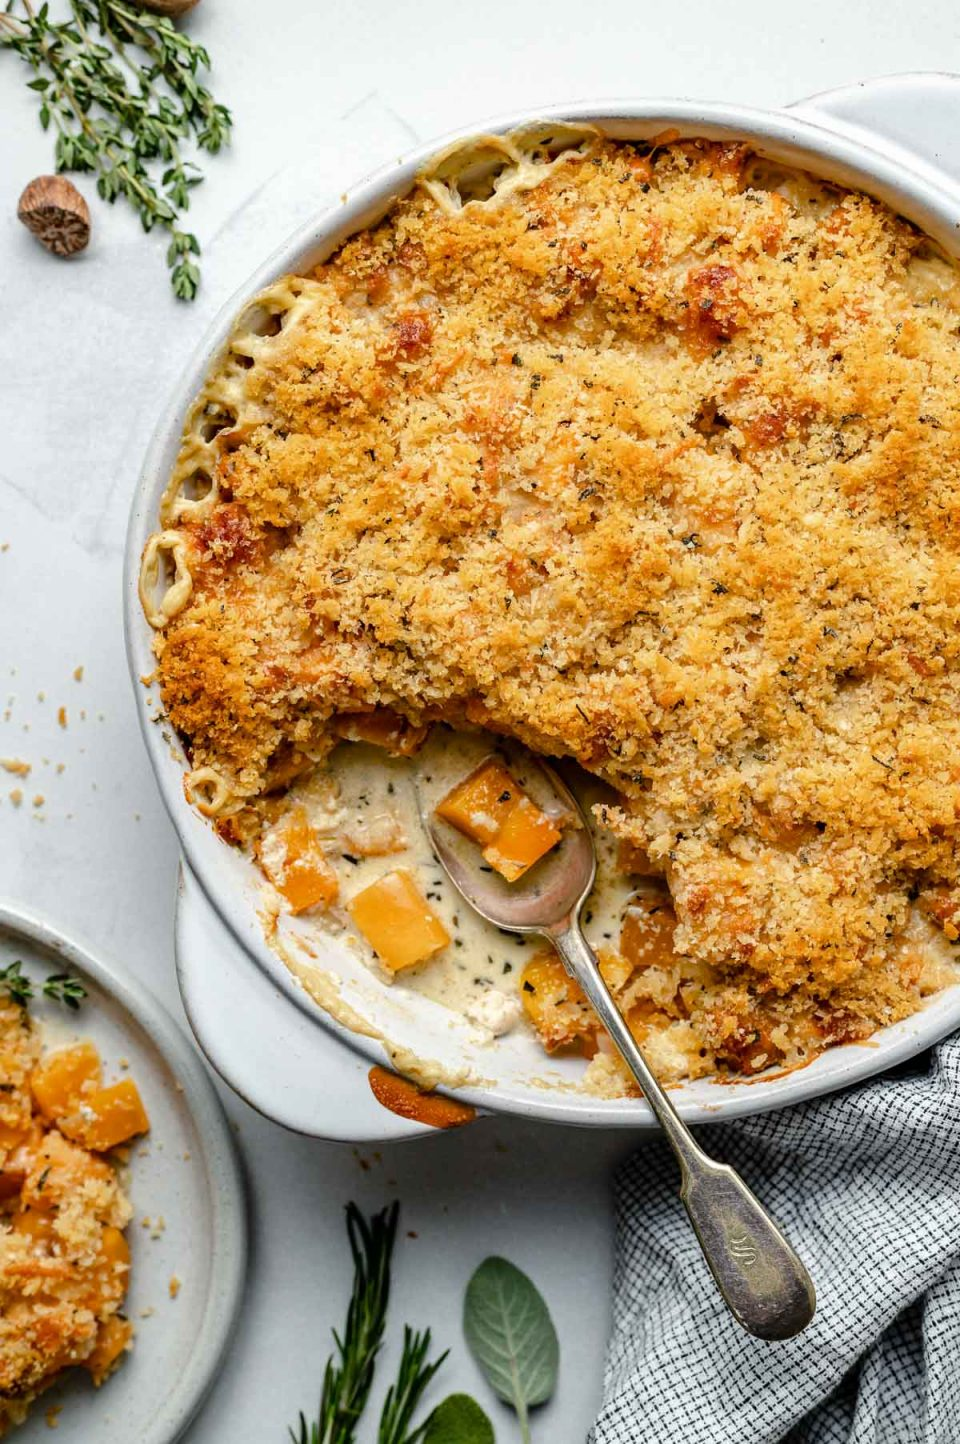 Baked butternut squash au gratin in a round baking dish. A spoonful of gratin has been taken out of the baking dish. The baking dish sits atop a light blue surface, next to a checkered linen napkin, fresh herbs & whole nutmeg.